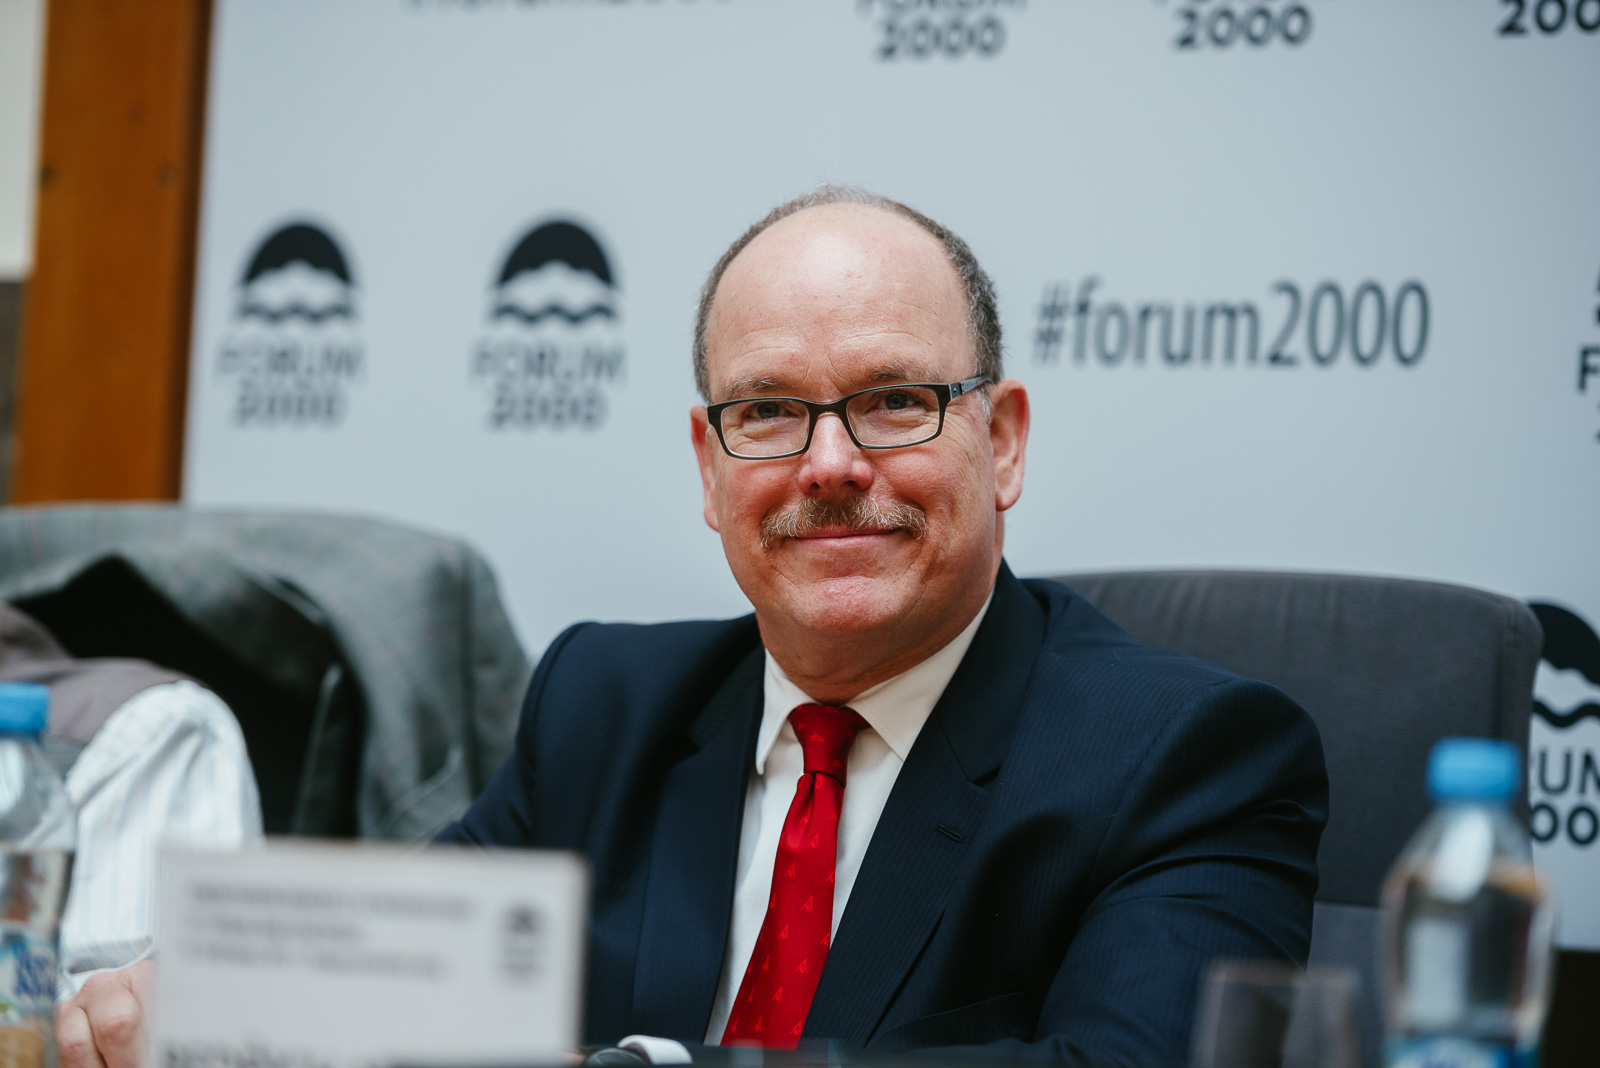 21st Forum 2000 conference